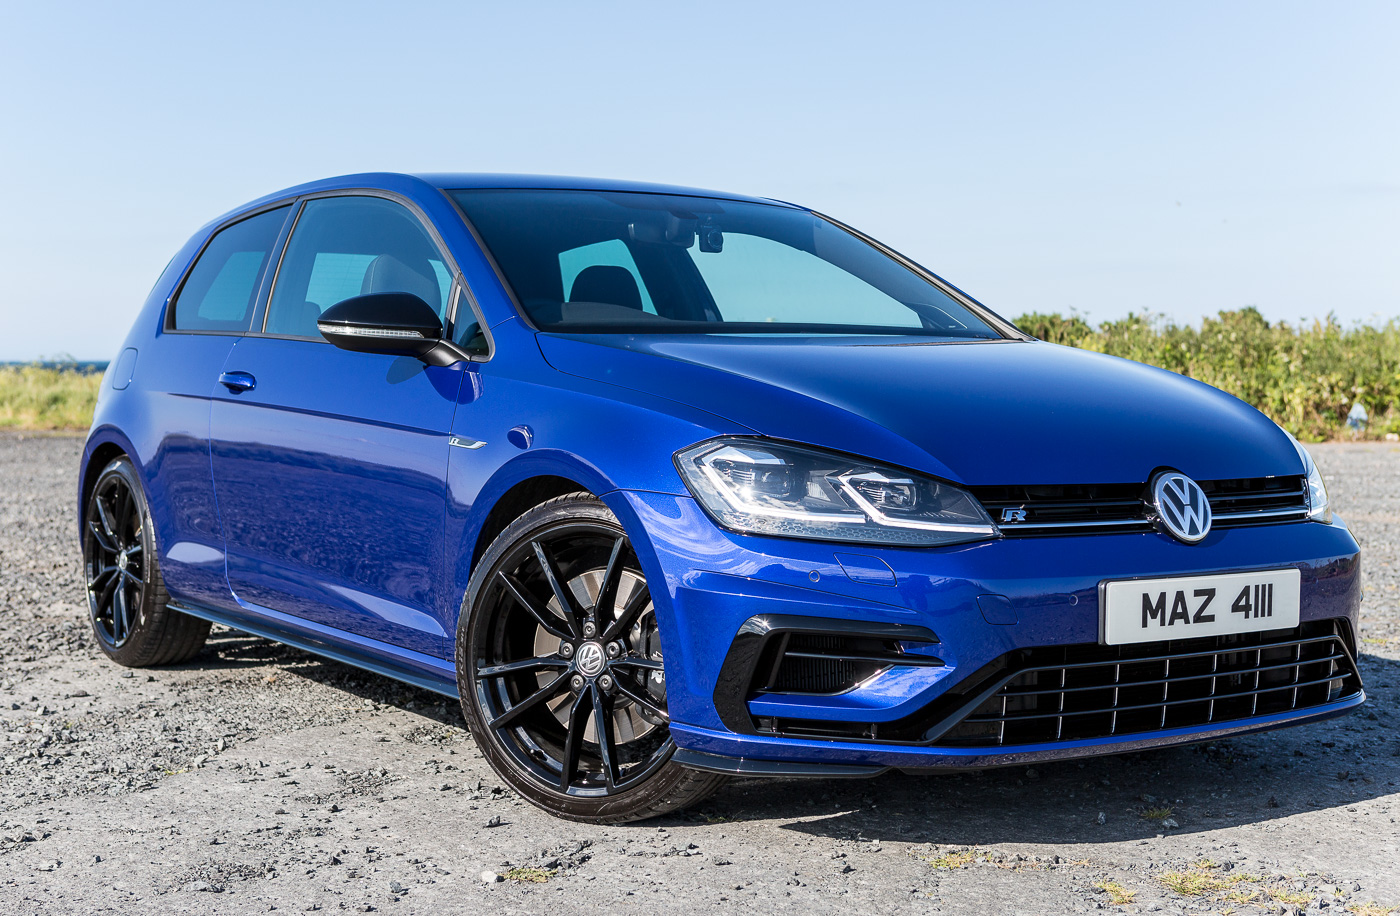 my golf r 7 5 3 door lapiz blue 7r member 39 s rides vw r owners club. Black Bedroom Furniture Sets. Home Design Ideas